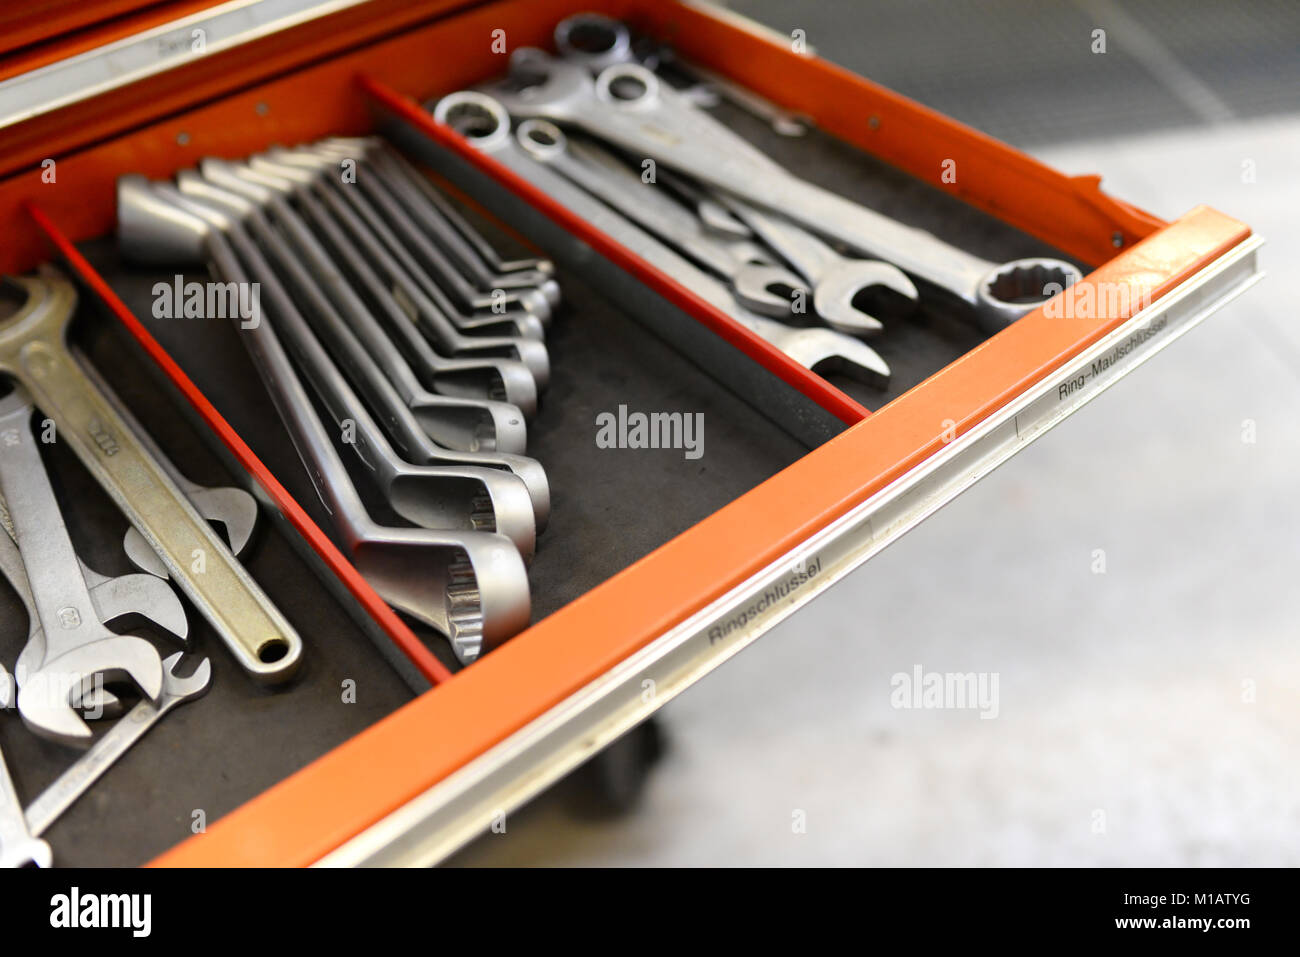 Drawer With Mechanical Tools In A Workshop For Repair And Assembly Stock Photo Alamy